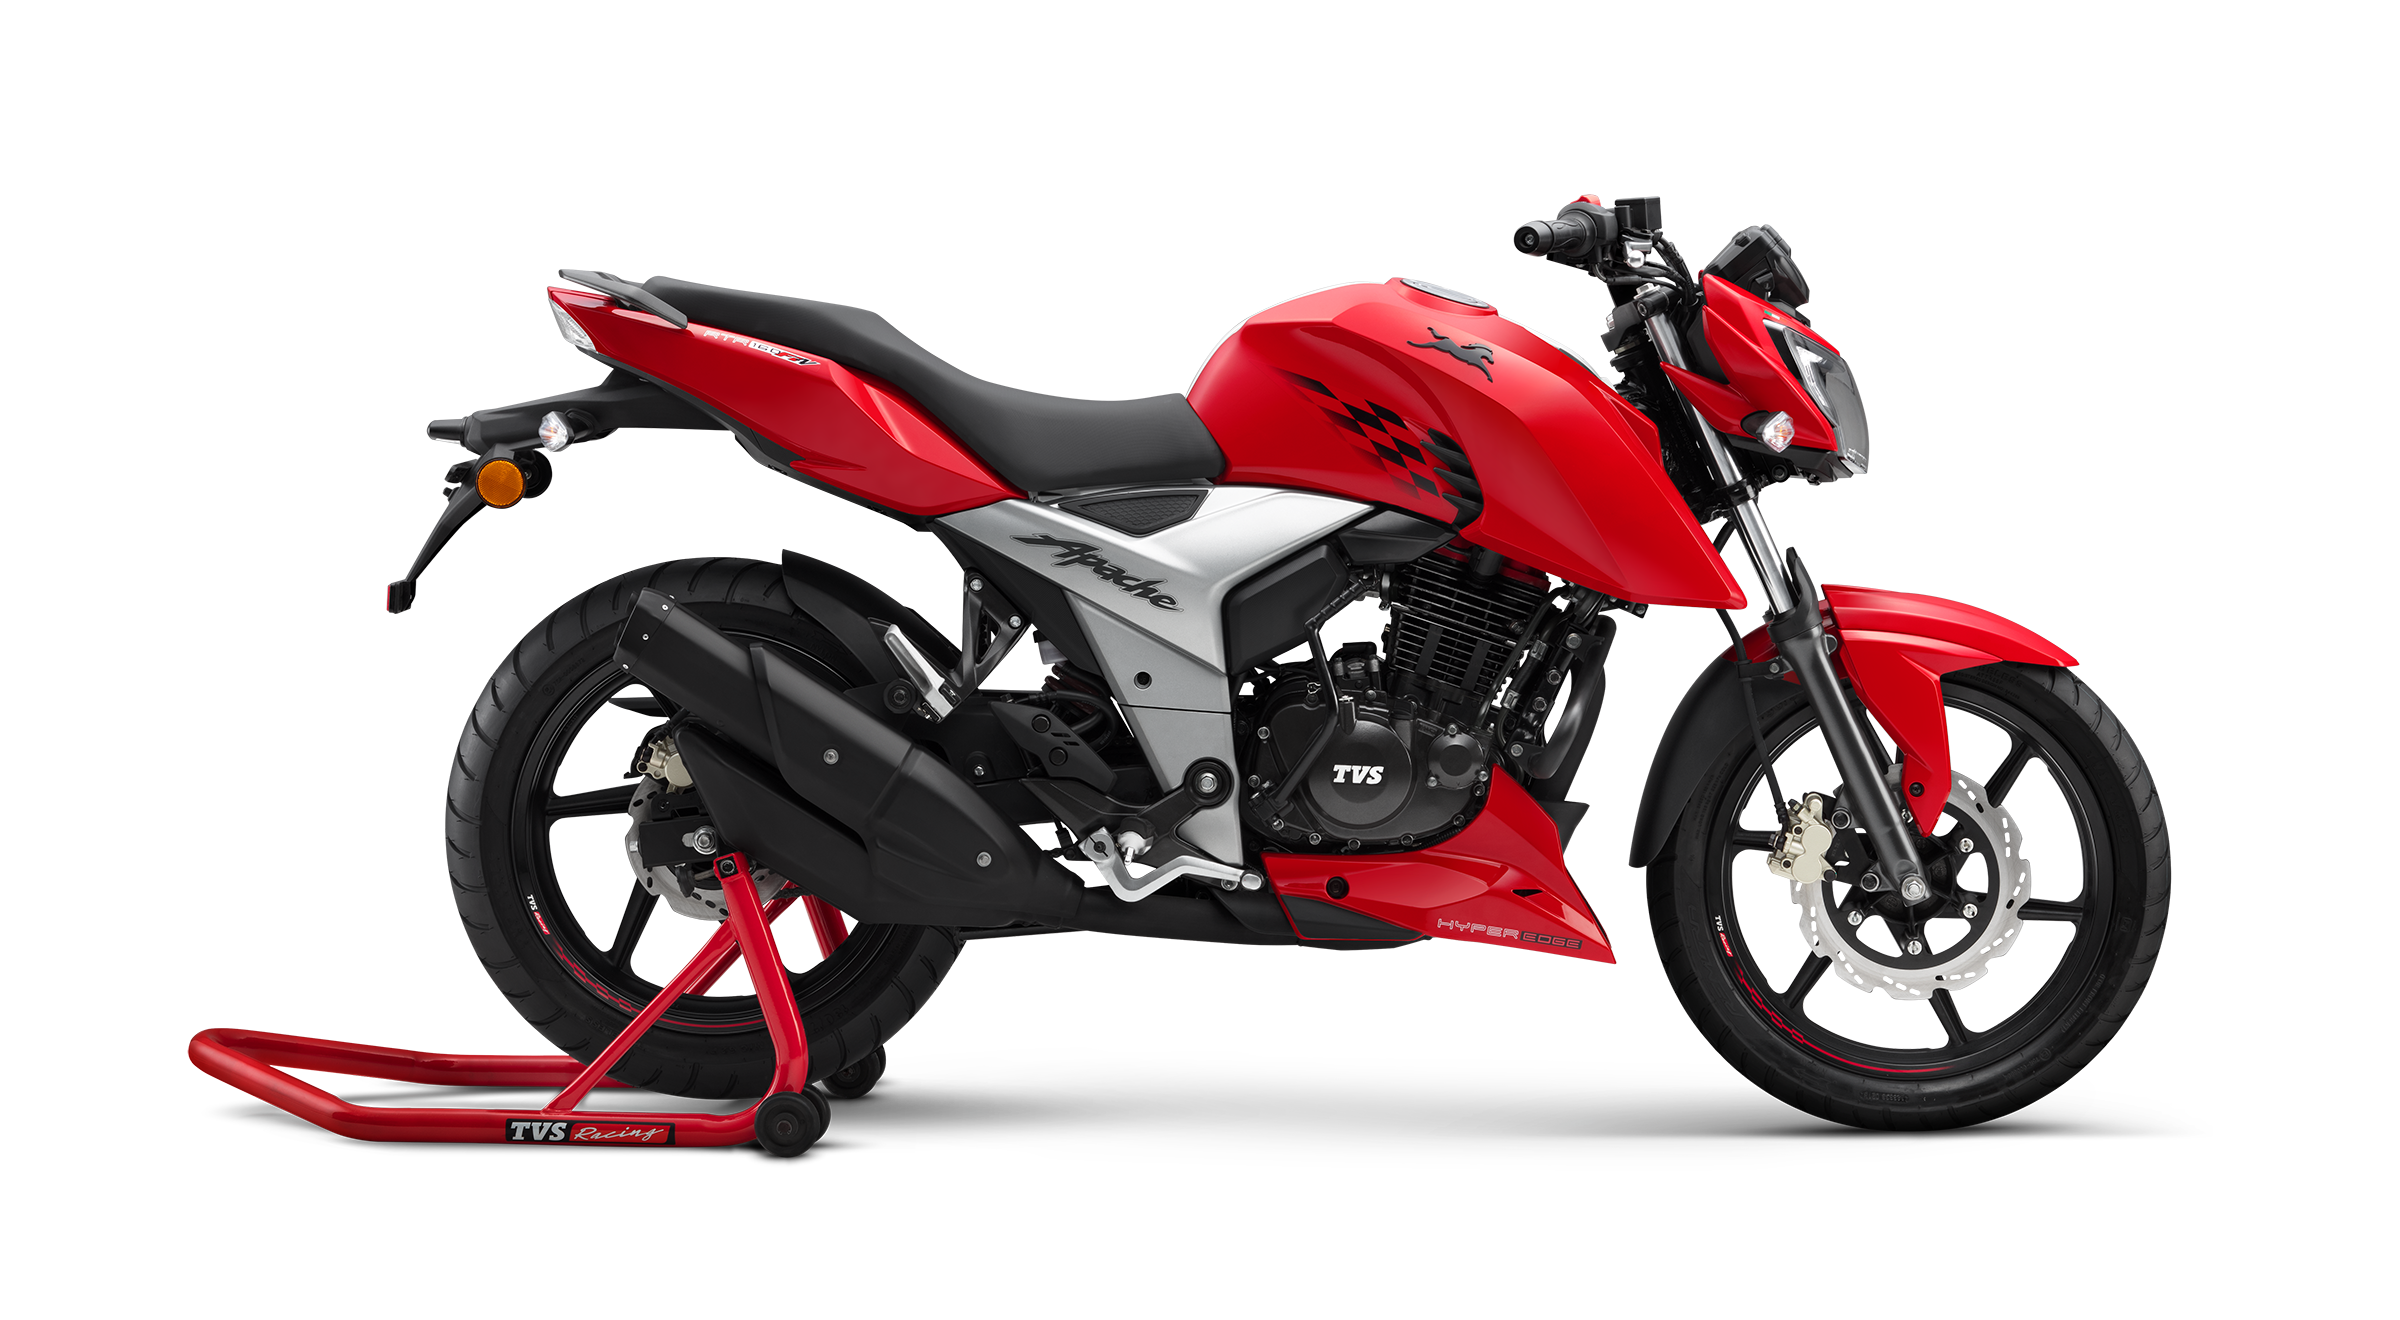 The launch of the TVS Apache RTR 160 4V in Sri Lanka helps build company's promising product portfolio.